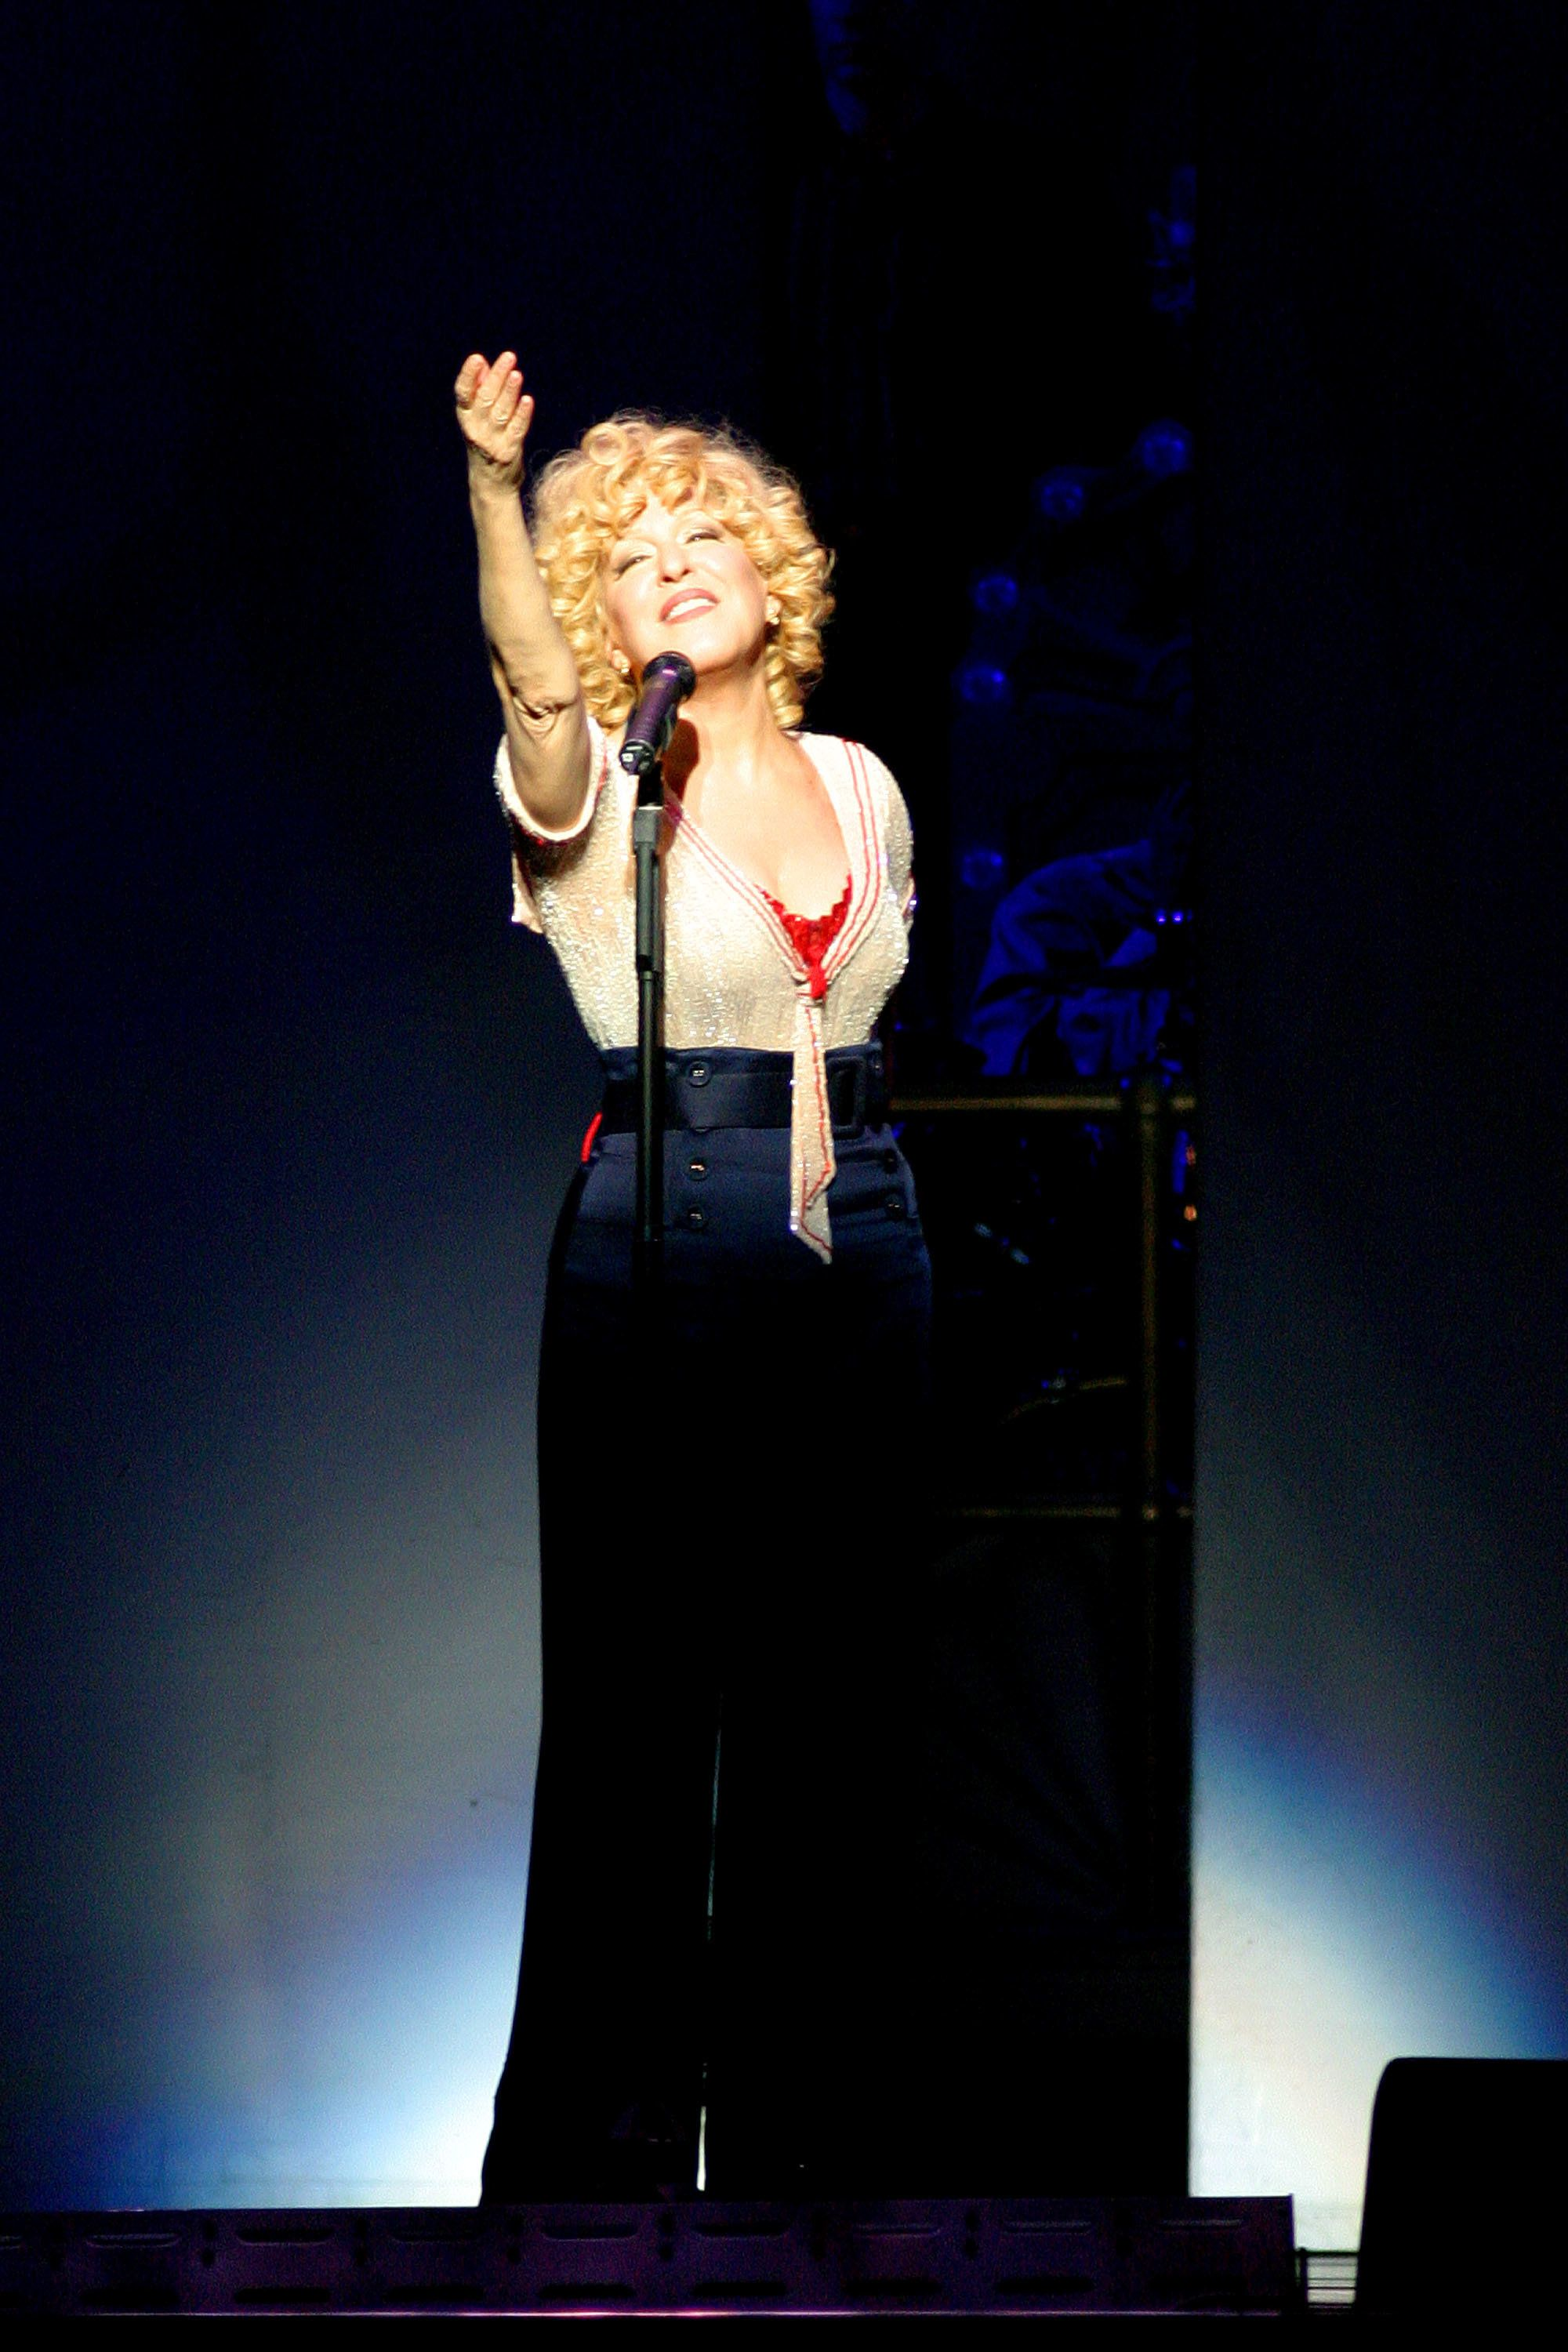 ATLANTIC CITY, NJ - OCTOBER 9:  Bette Midler performs during her 'Kiss My Brass' tour at the Atlantic City Boardwalk Hall October 9, 2004 in Atlantic City, New Jersey.  (Photo by Donald B. Kravitz/Getty Images)